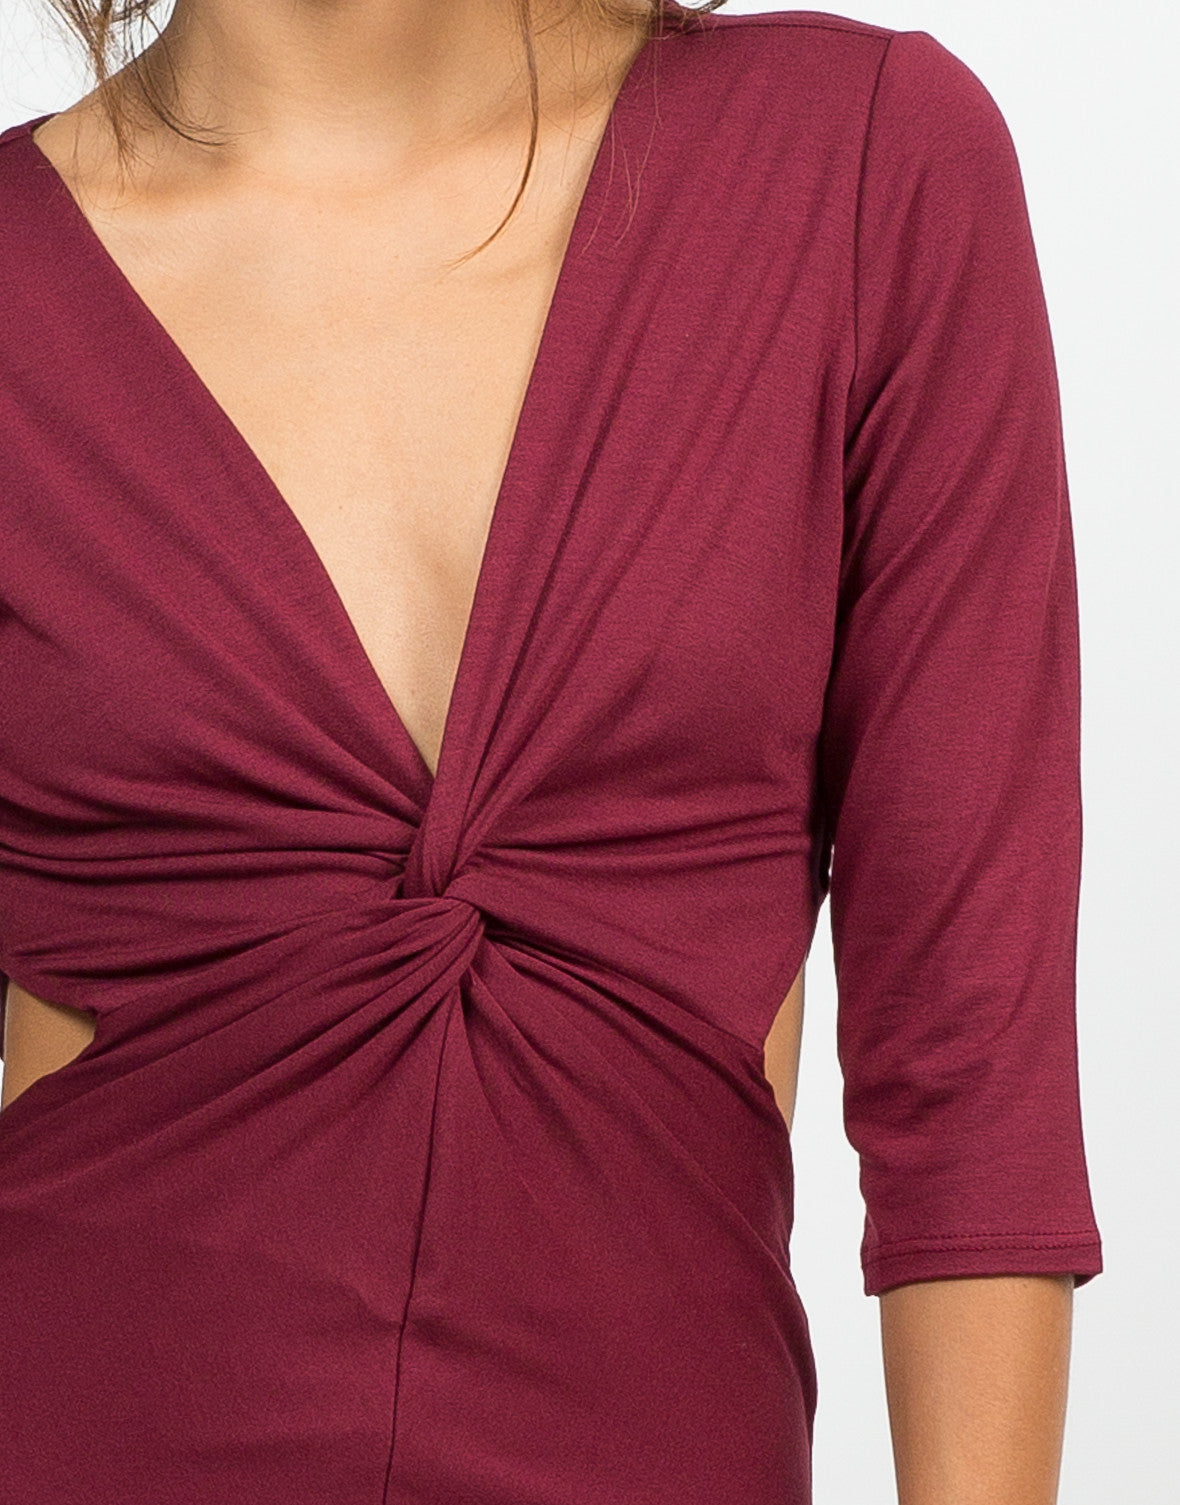 Detail of Twist Front Cut Out Dress